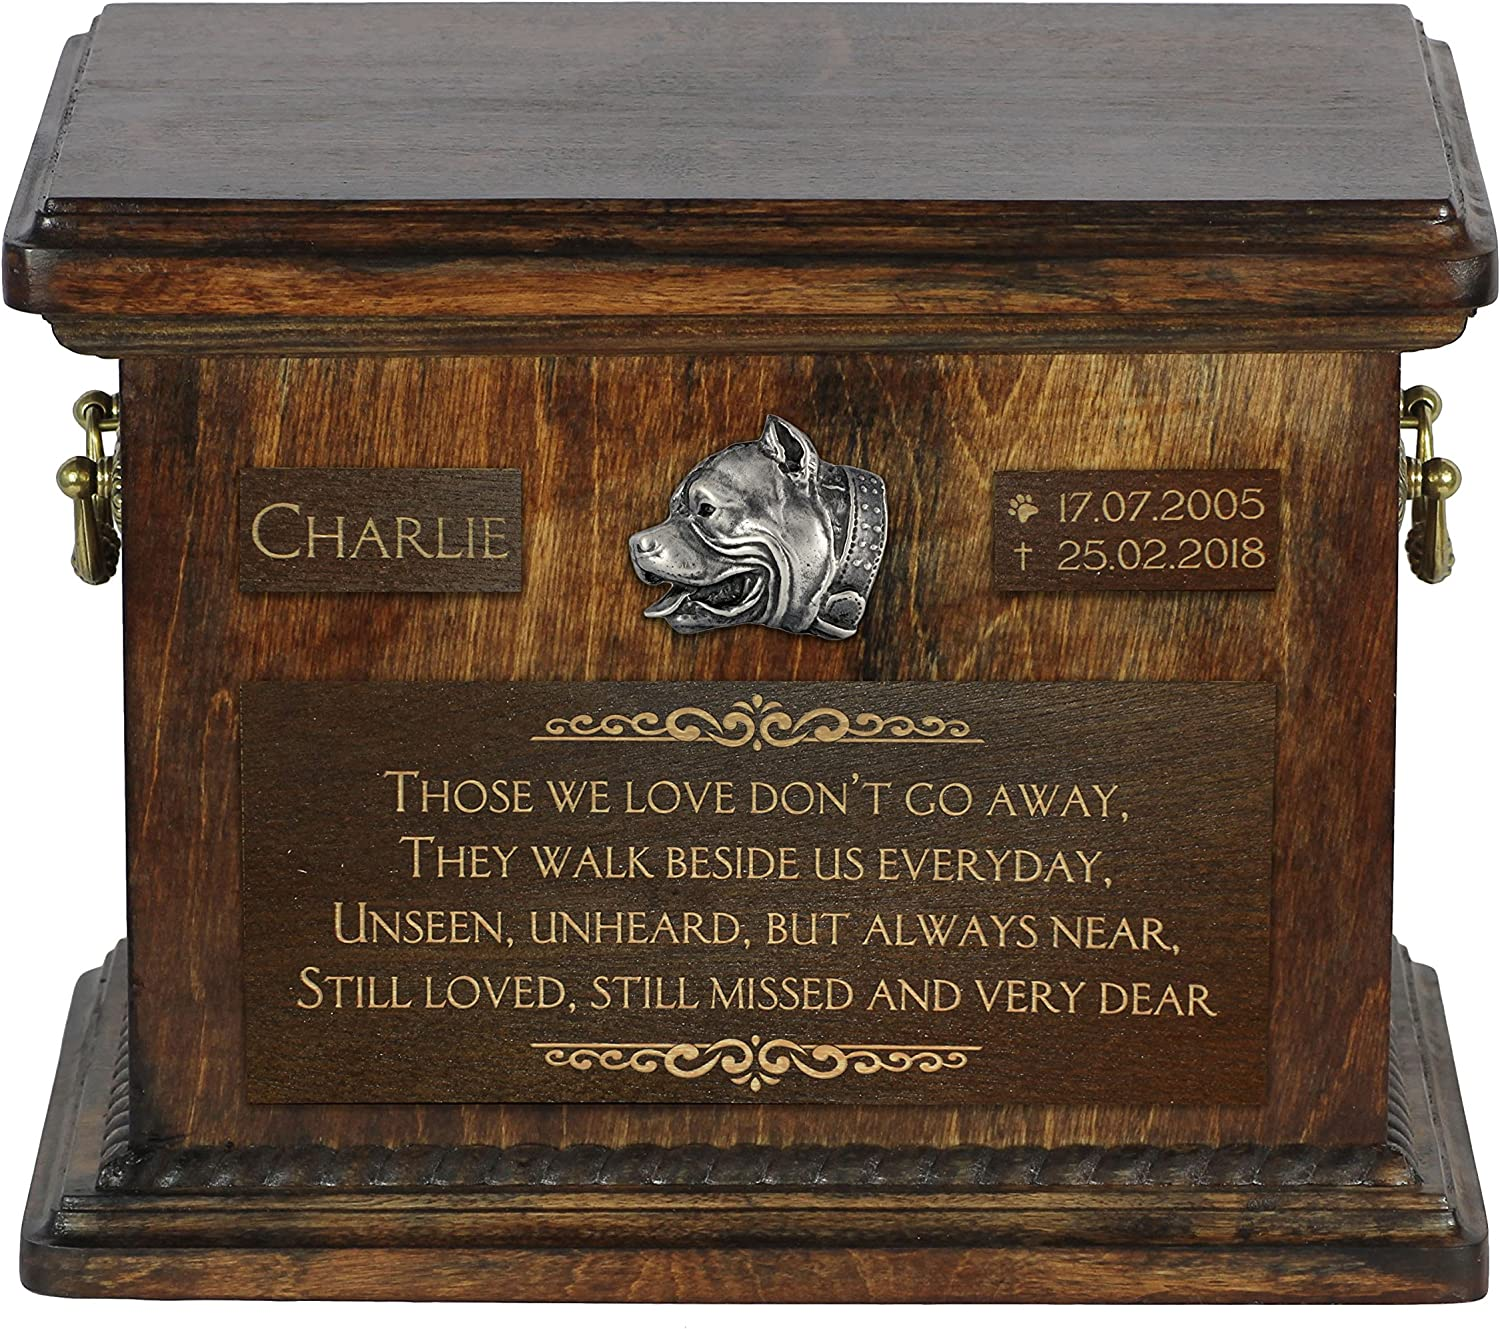 ArtDog Ltd. Pit Bull, urn for dog's ashes with relief and sentence with your dog name and date